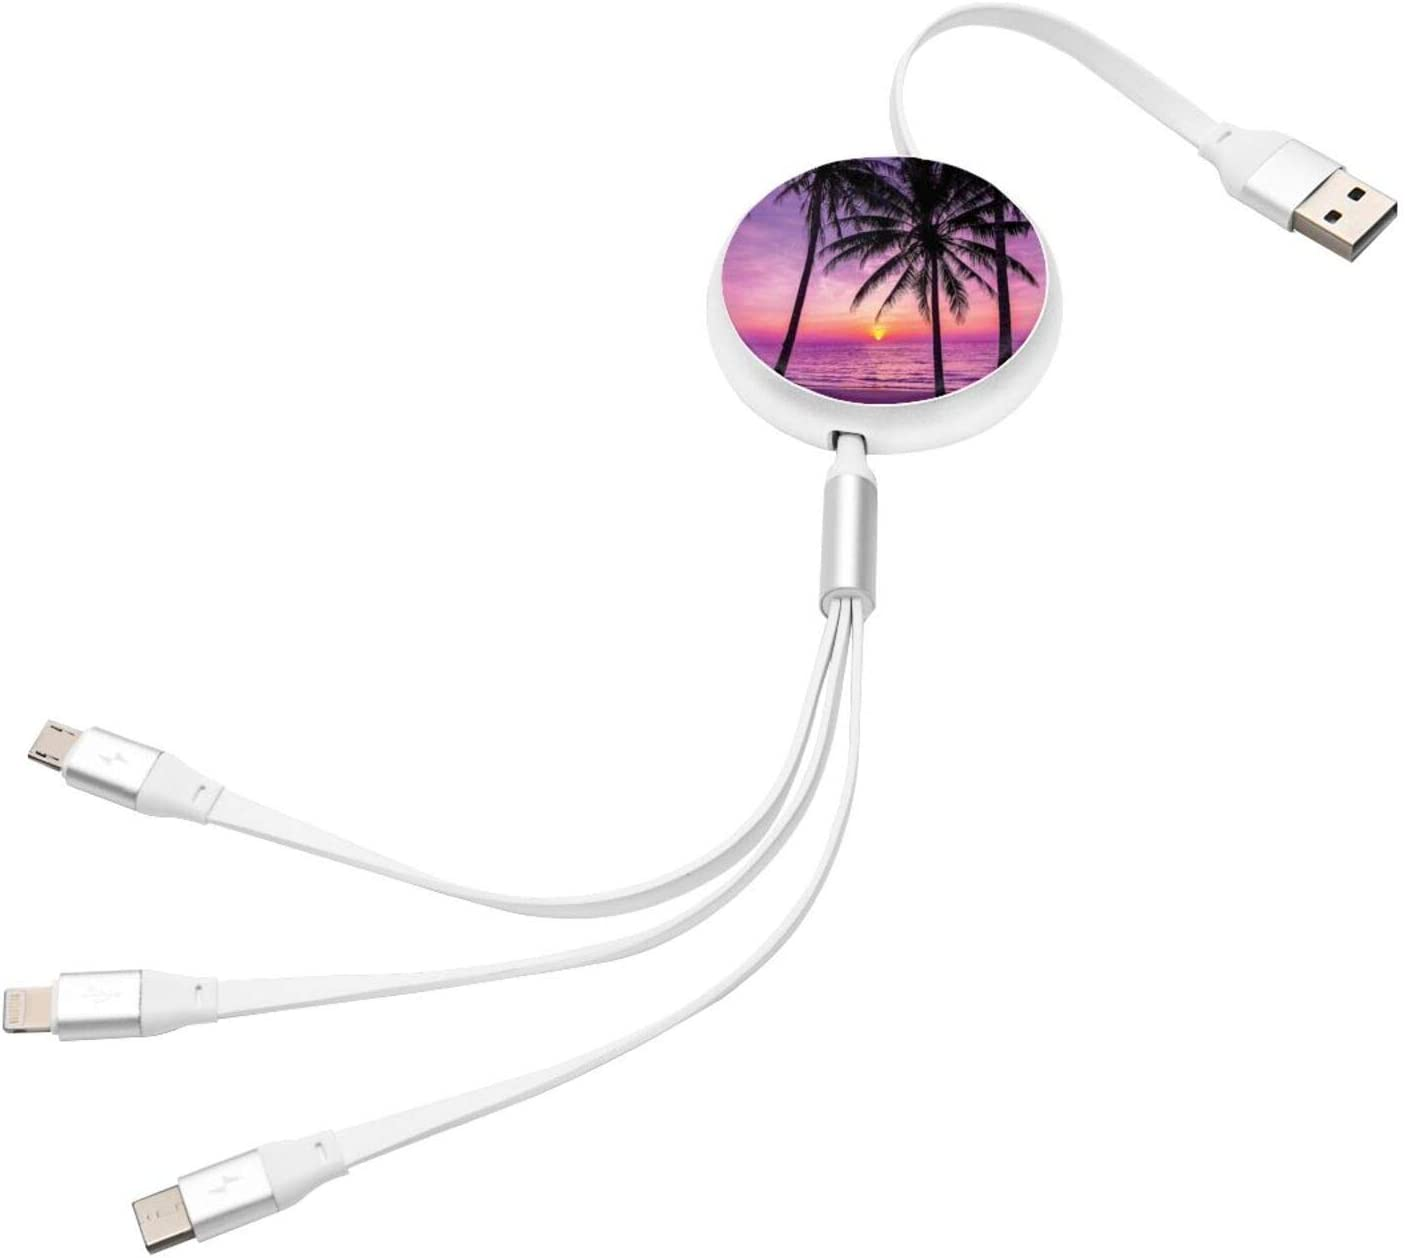 Multi Charging Cable Portable 3 in 1 Palm Trees Silhouette at Sunset Dreamy Dusk Warm Twilight USB Cable USB Power Cords for Cell Phone Tablets and More Devices Charging